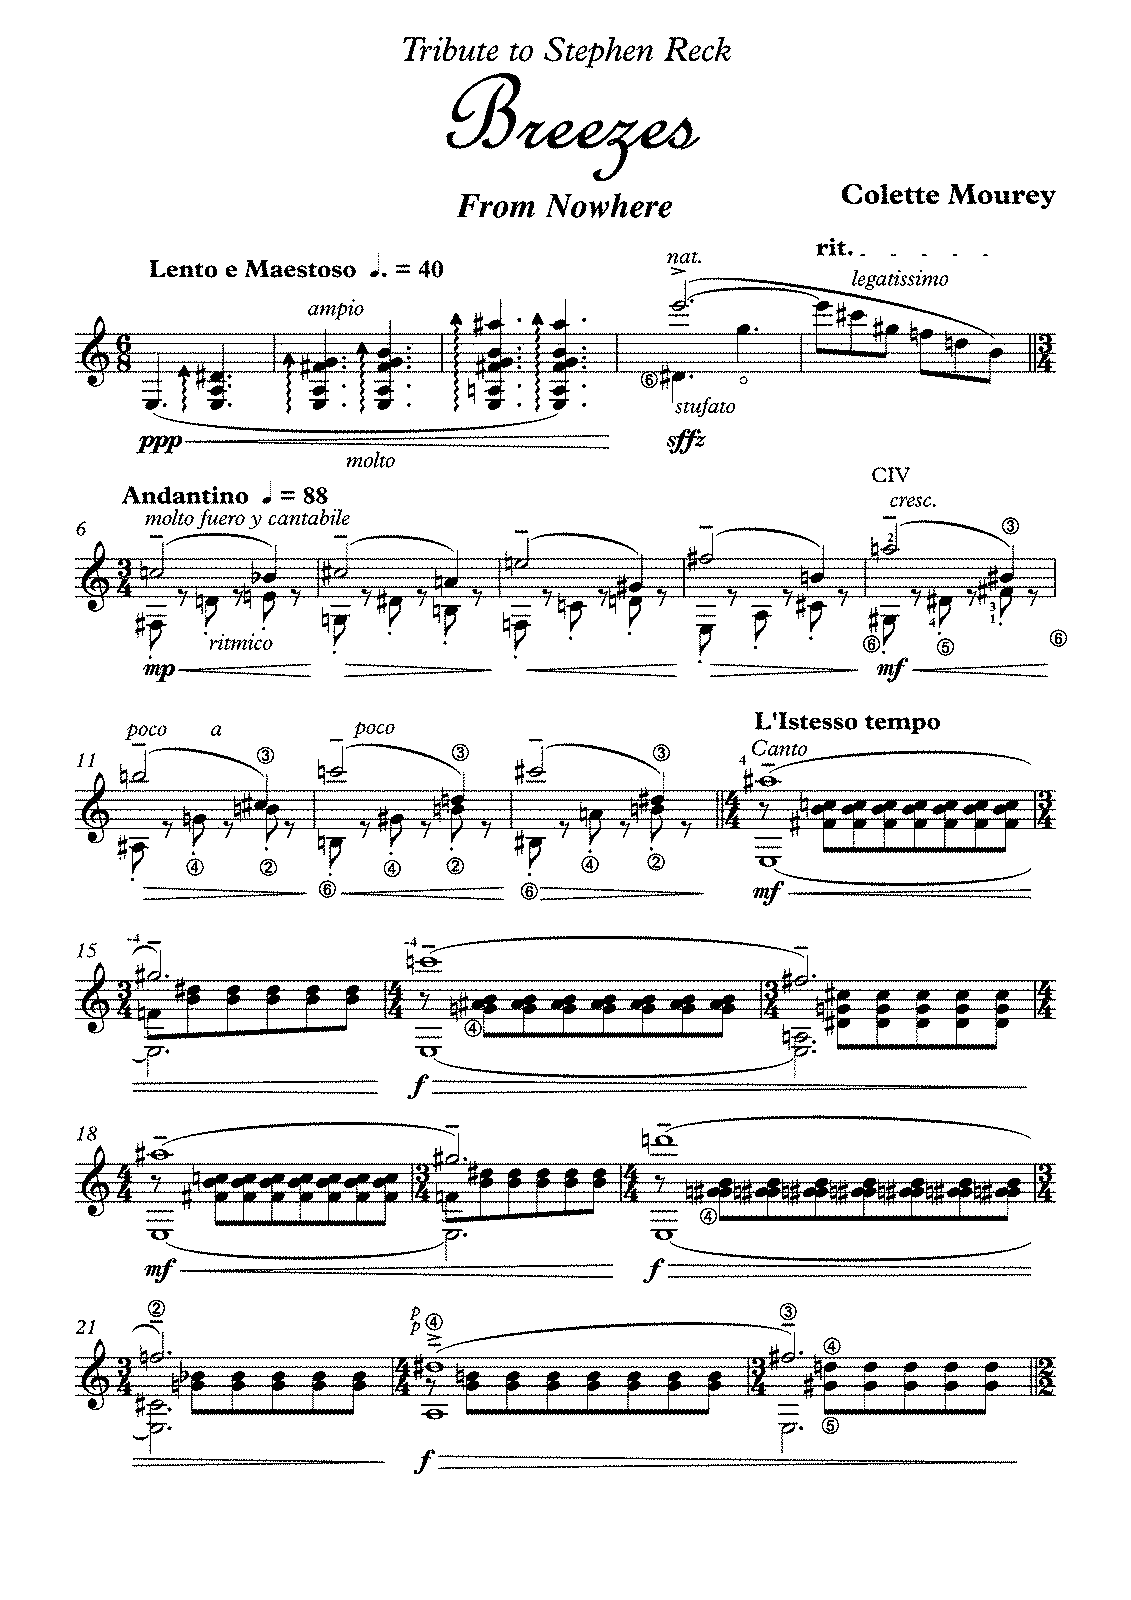 PMLP496045-Breezes From Nowhere guitare - Partition complète.pdf